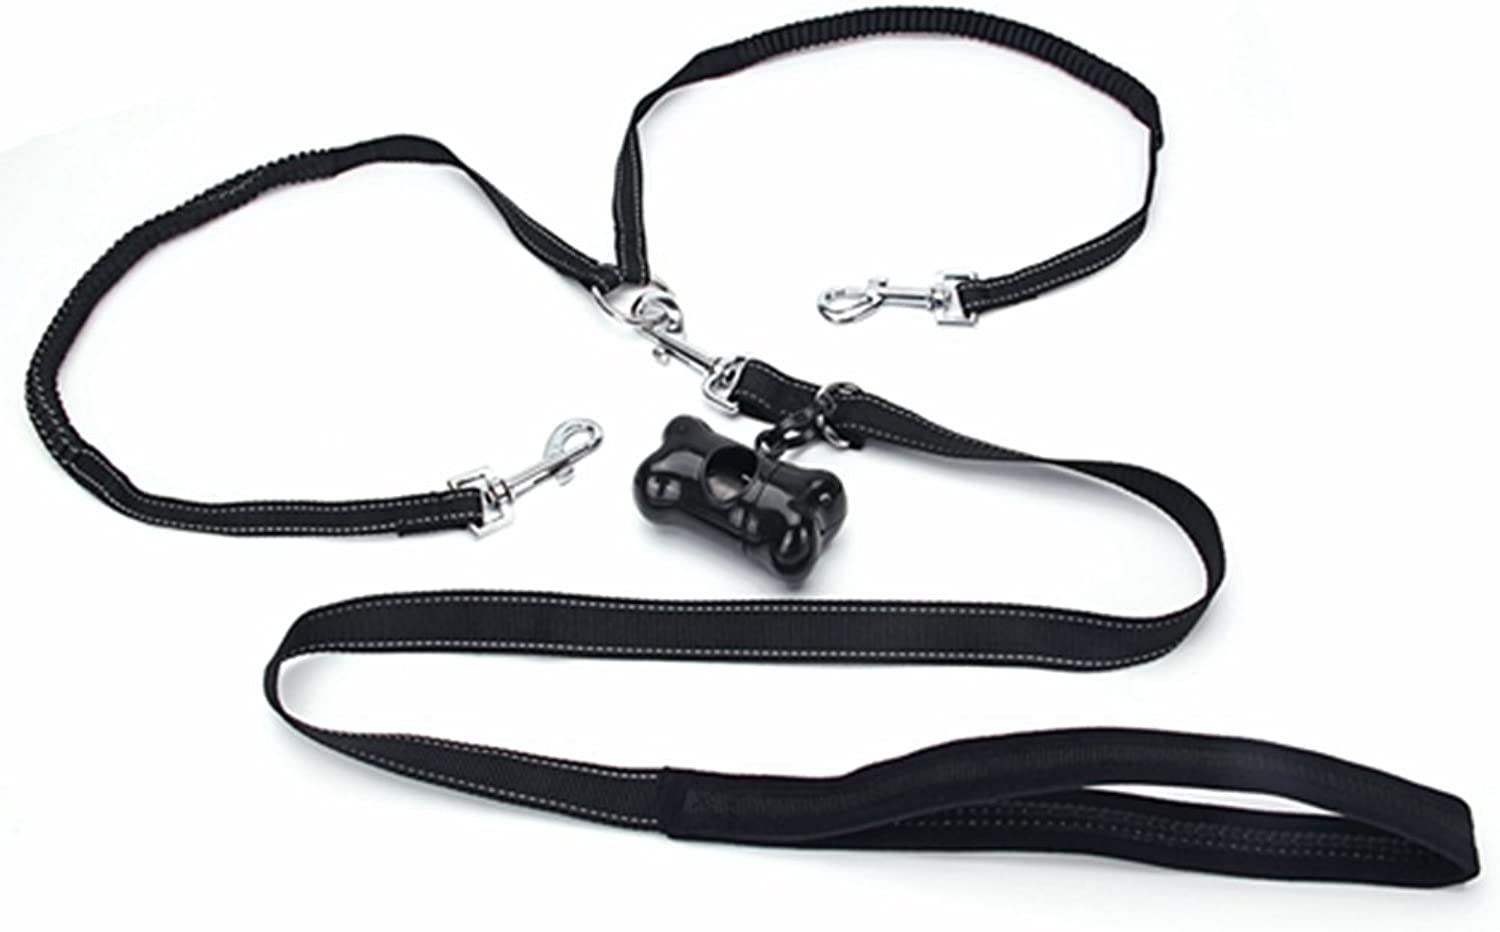 DOHOT 2Way No Tangle Coupler Durable Double Dog Leash with Bags Dispenser for Small Medium Dogs